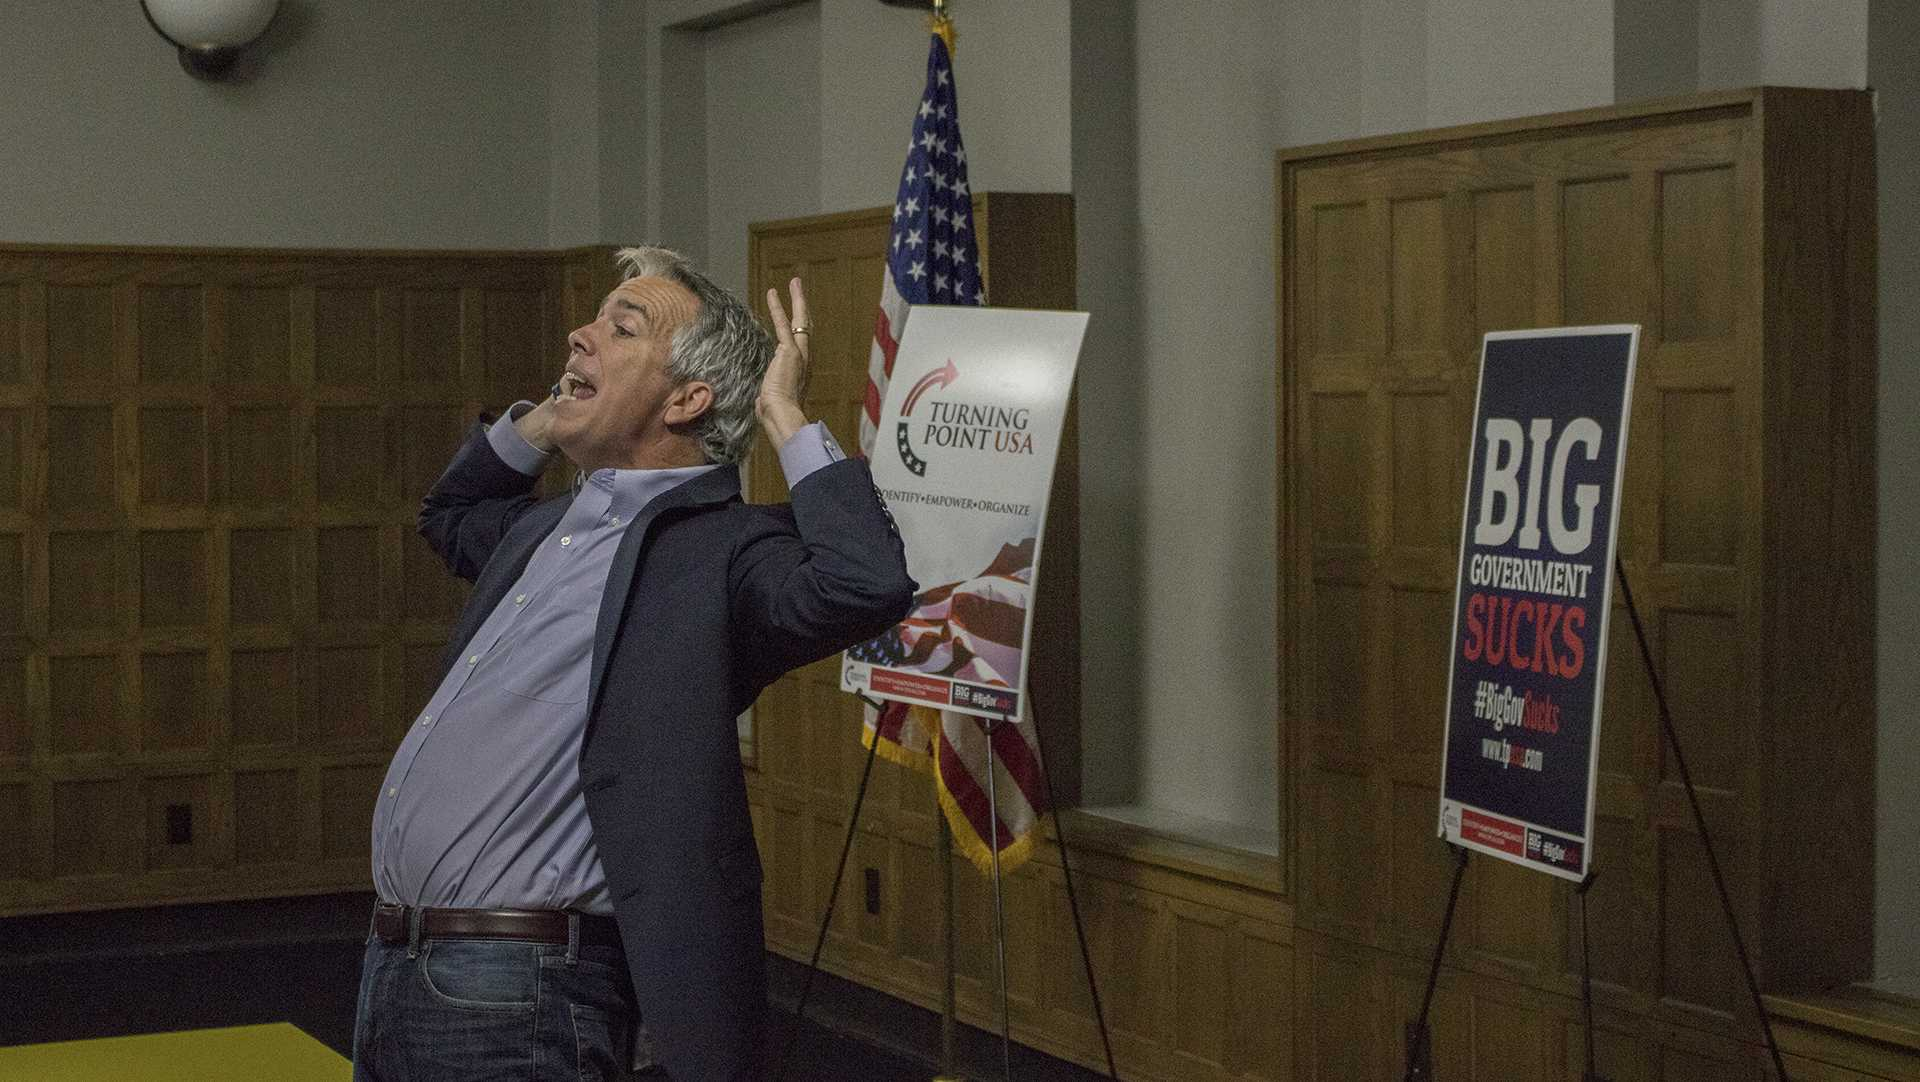 Joe Walsh speaks emphatically at the IMU on Tuesday, October 17, 2017. Walsh presented about the states of both major political parties and background regarding the presidential election. (Shivansh Ahuja/The Daily Iowan)